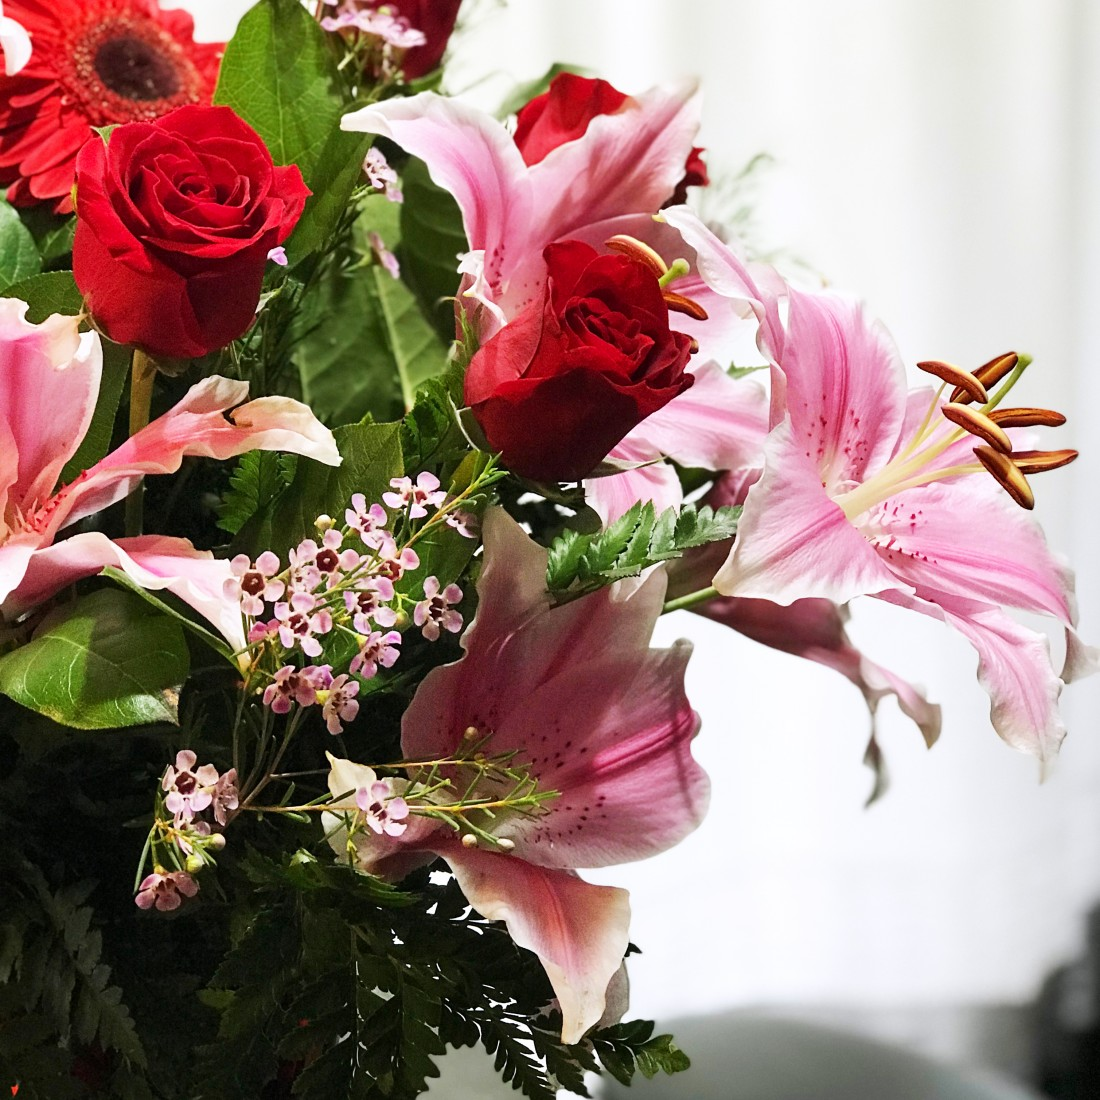 Say It With Flowers Teleflora Has 4 New Flower Arrangements For Valentines Day